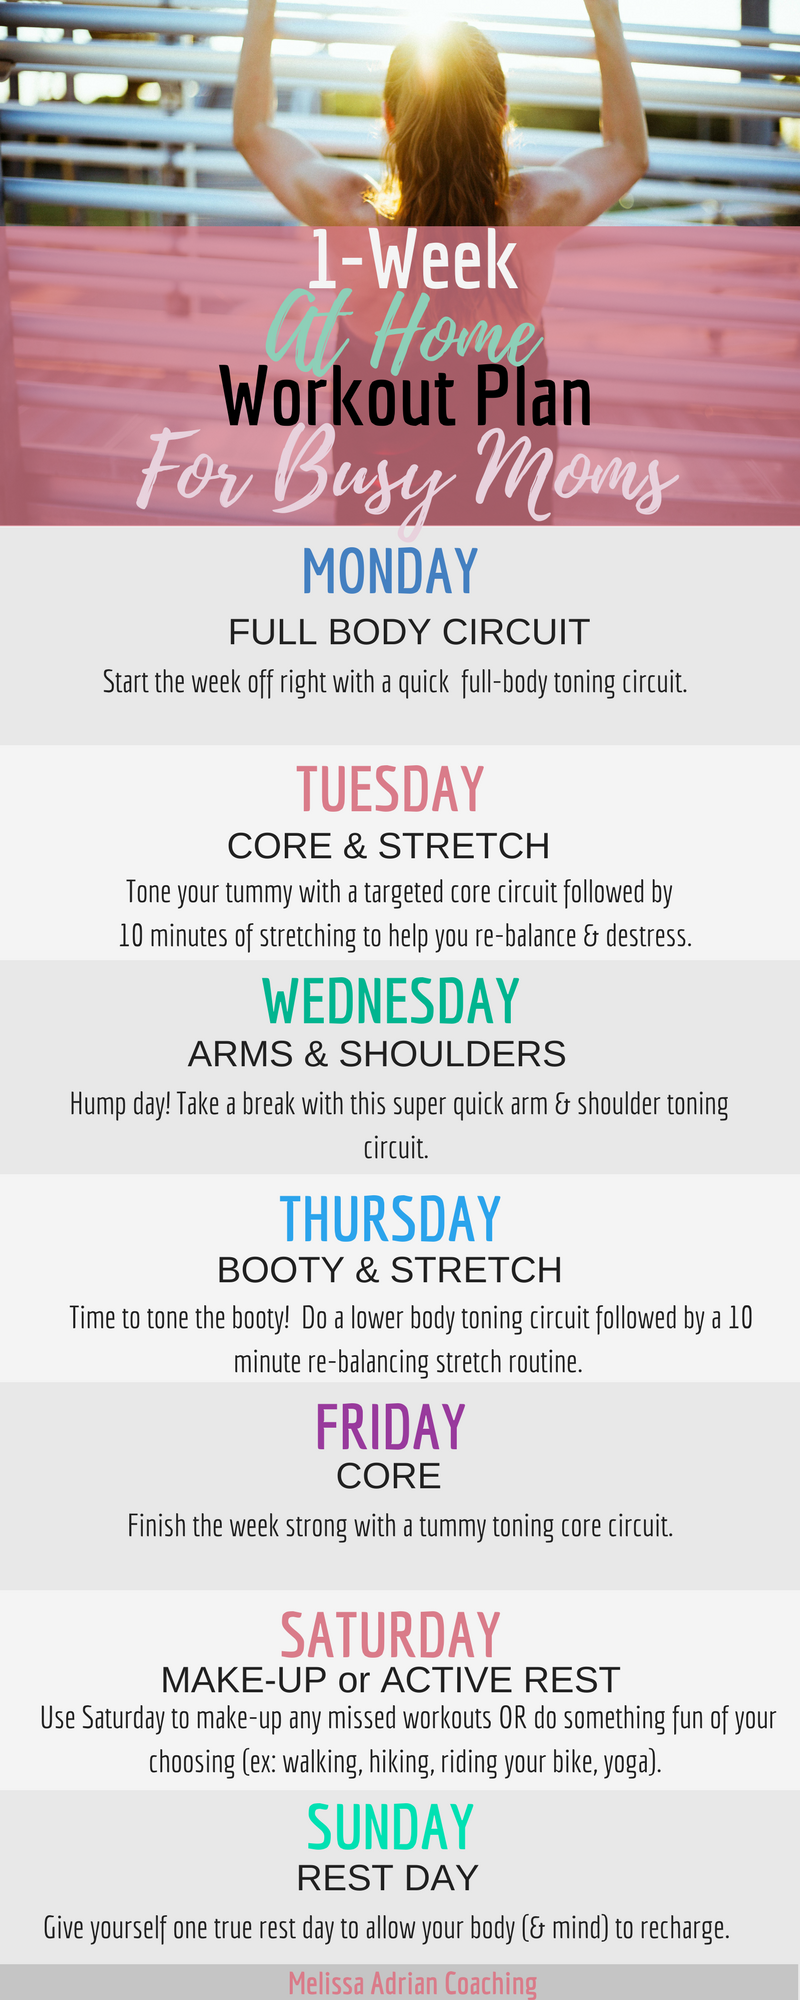 1-week At-Home Workout Plan for Busy Moms.png